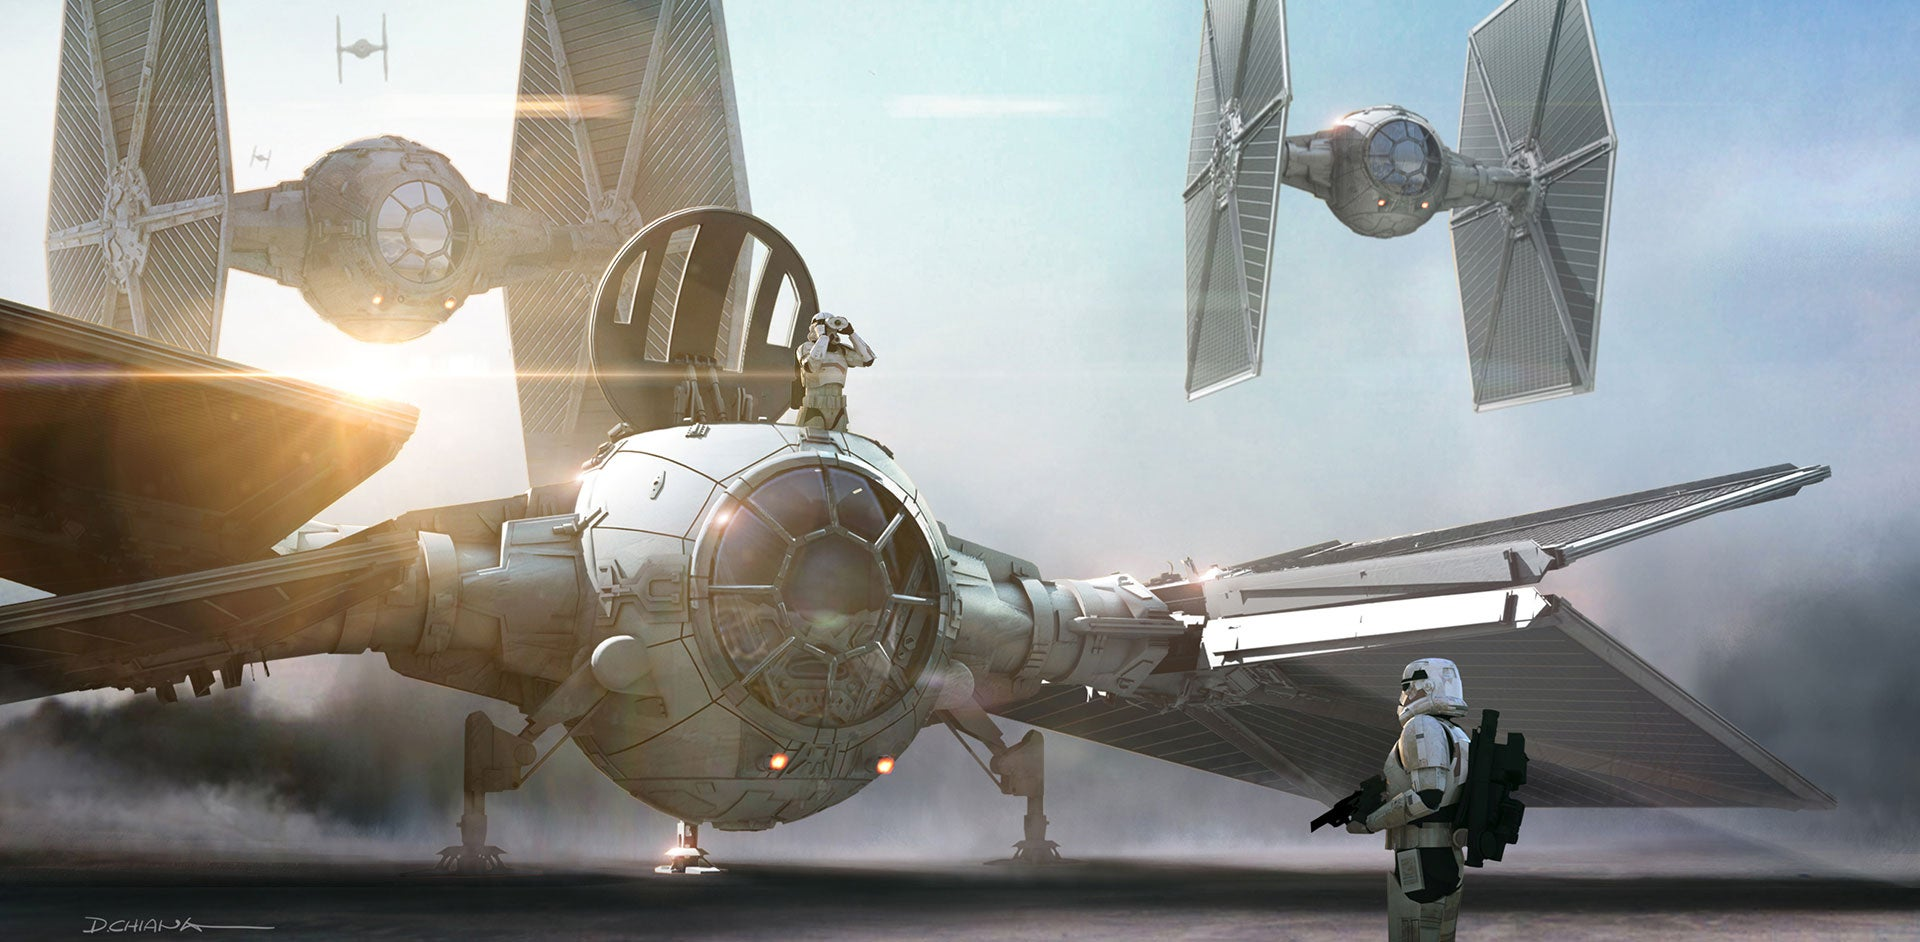 The Force Awakens' Concept Art Had Some Cool Ideas